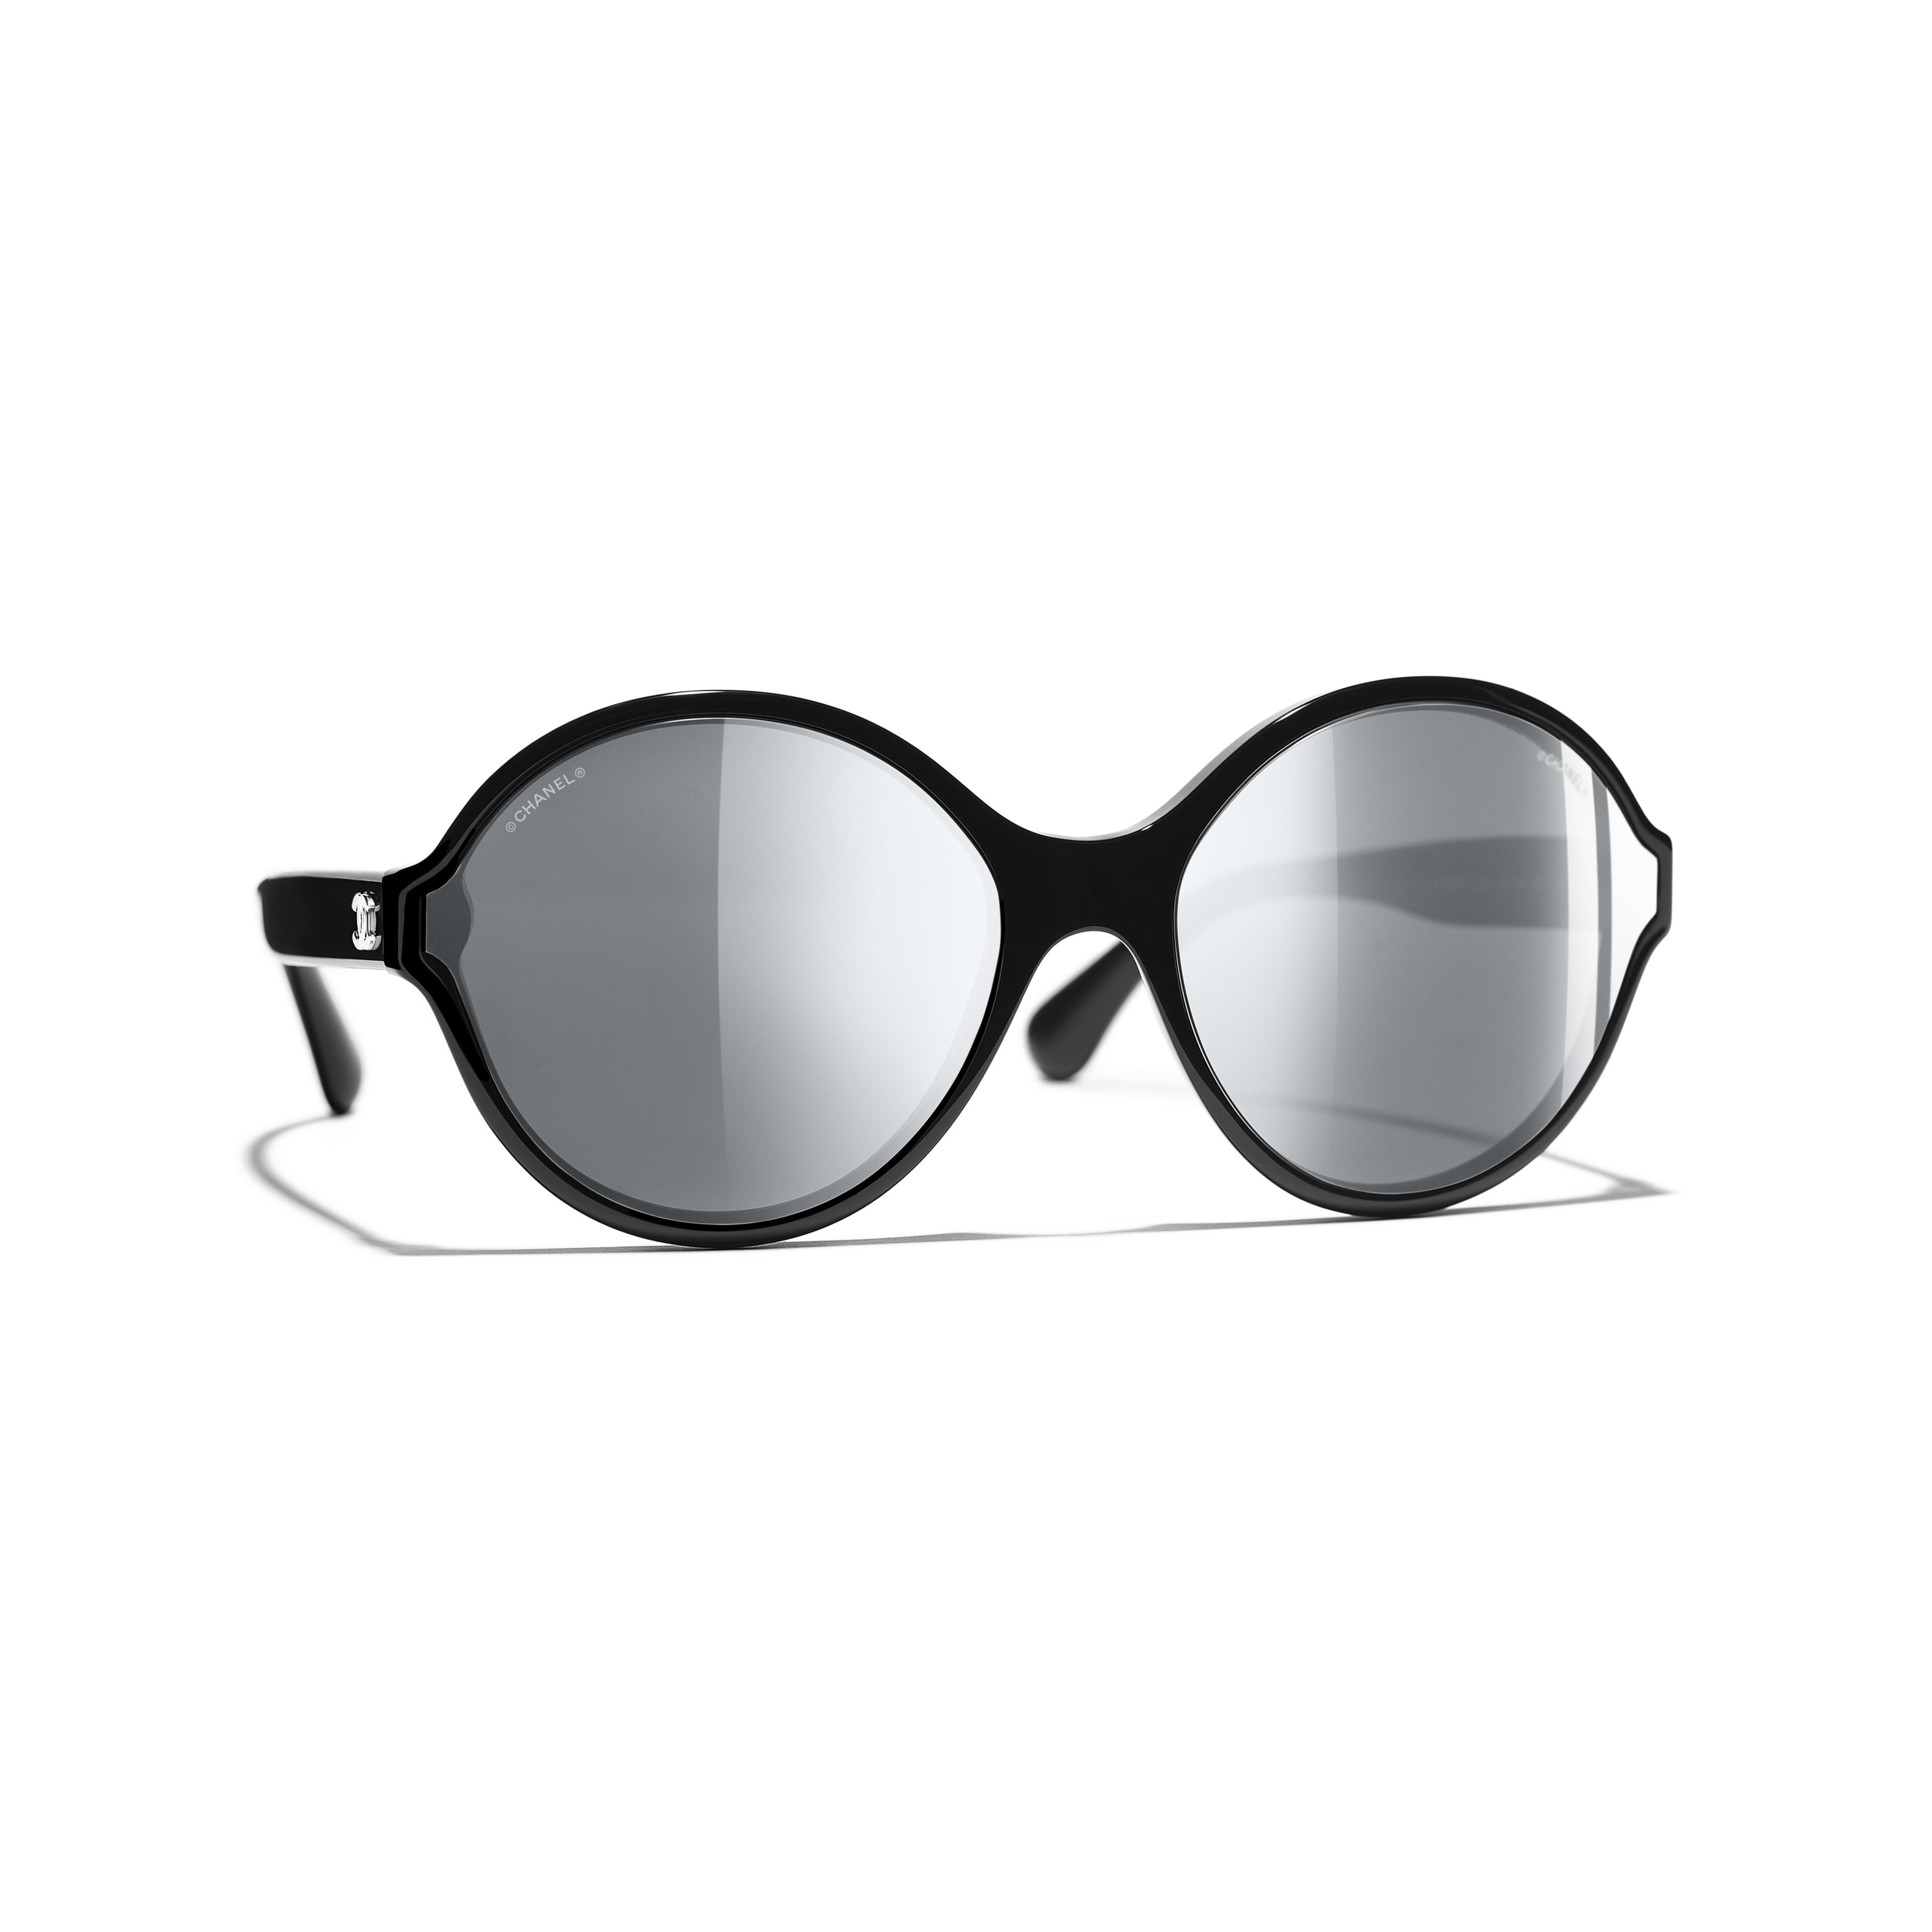 Round Sunglasses - Black - Acetate - Default view - see full sized version